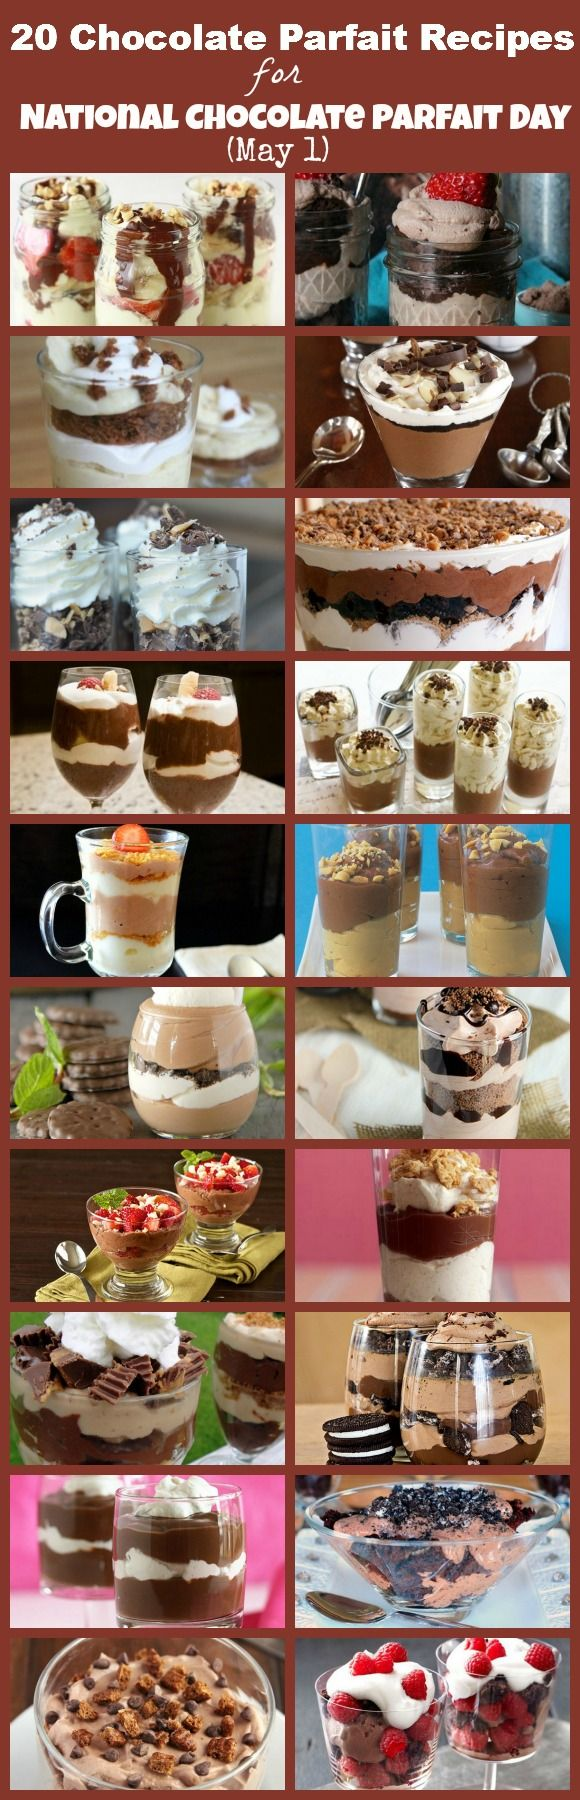 20 Delicious Chocolate Parfait Recipes for National Chocolate Parfait Day (May 1)